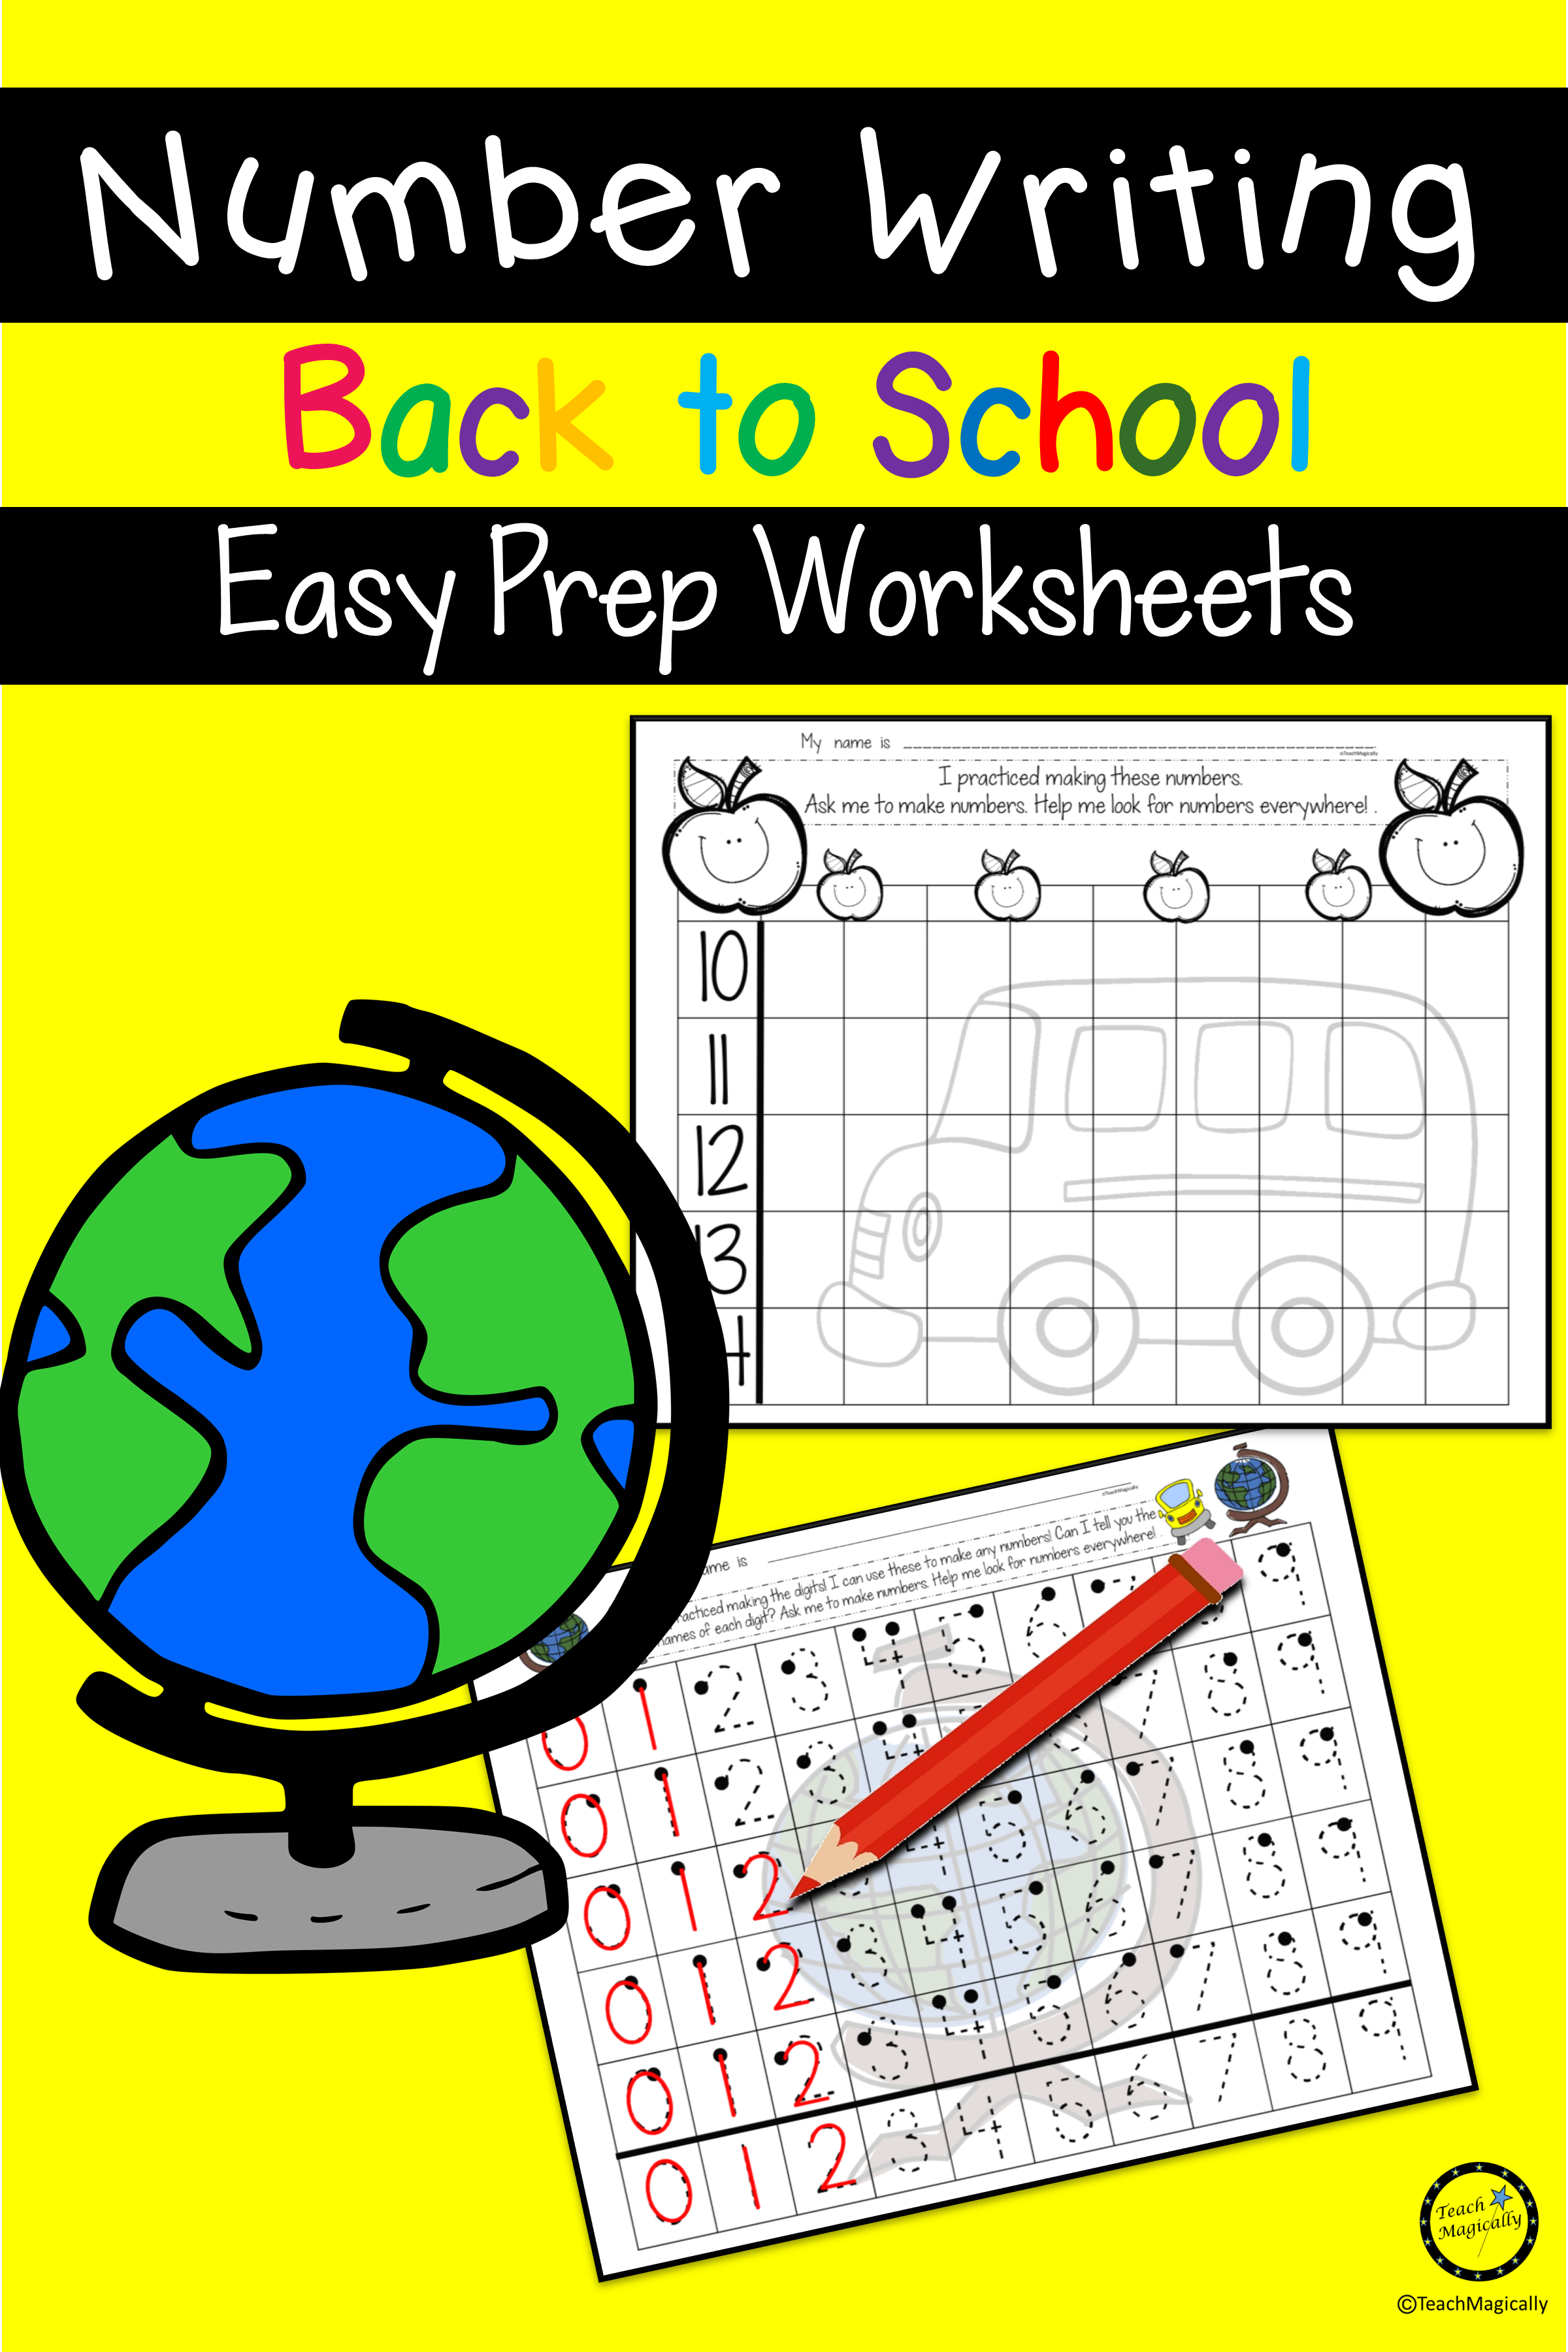 Back To School Math Number Writing Practice 1 20 Worksheets Number Writing Practice Writing Practice Writing Numbers [ 3600 x 2400 Pixel ]